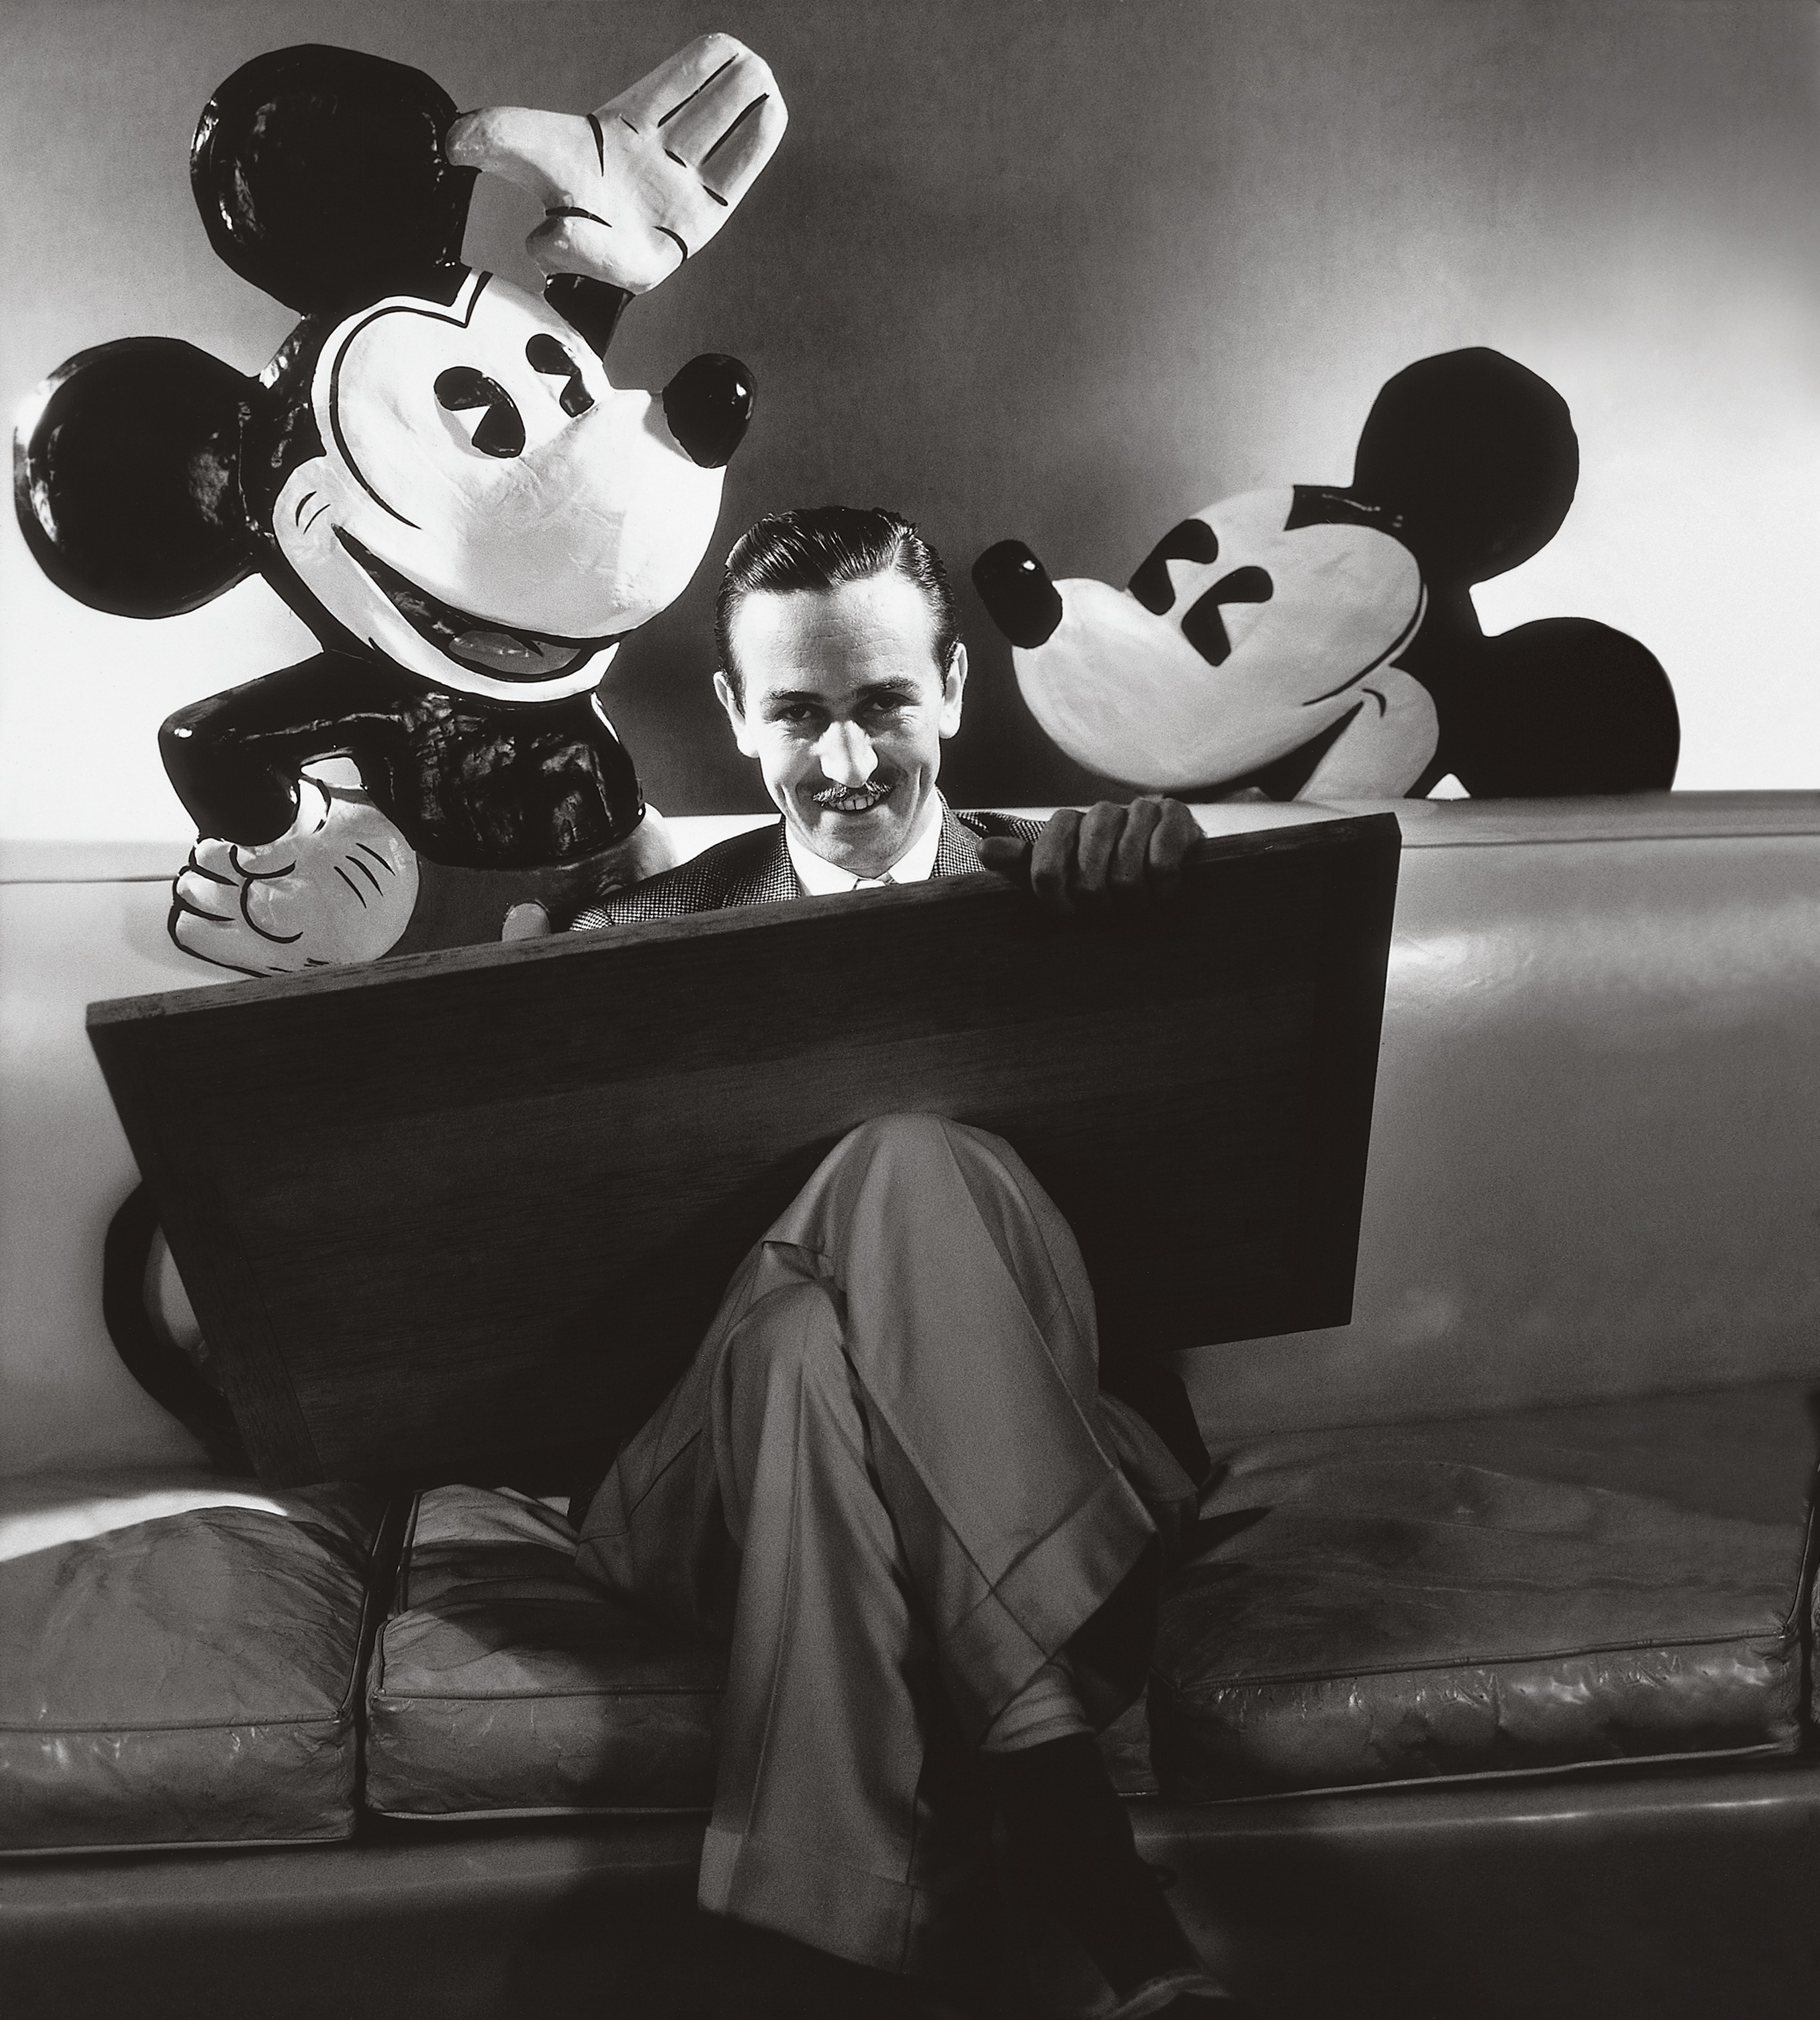 ca. October 1933, USA --- Walt Disney seated with drawing board on his lap and representations of his creations Mickey and Minnie Mouse behind. (Photo Courtesy of © Condé Nast Archive/Corbis)